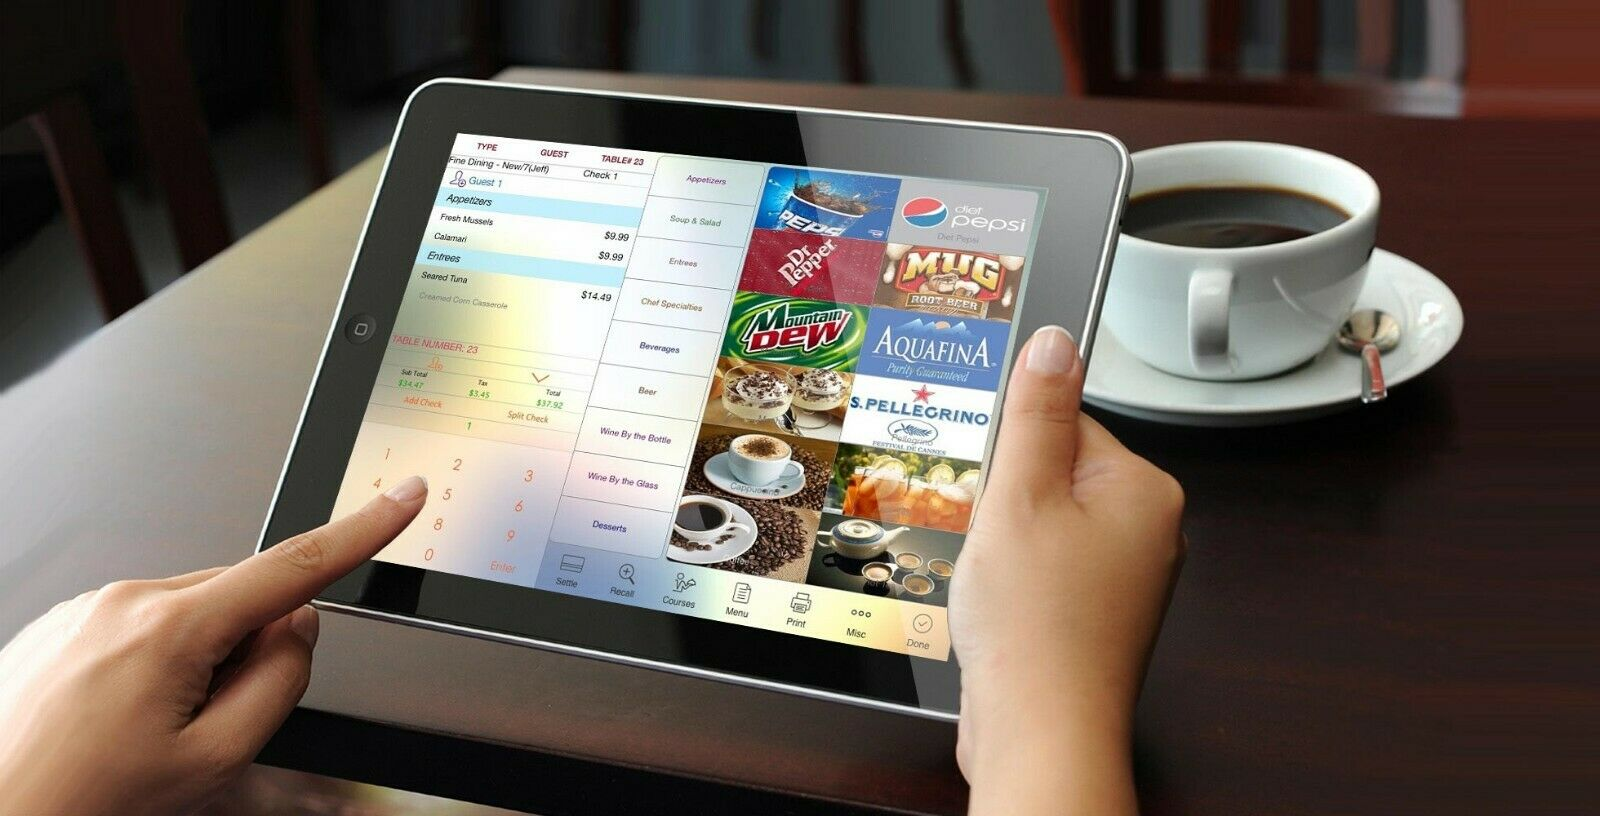 Network system, 1 x PC, 2 x Tablets POS system register Retail store Liquor Convenience Restaurant Bar Pizza Tablet